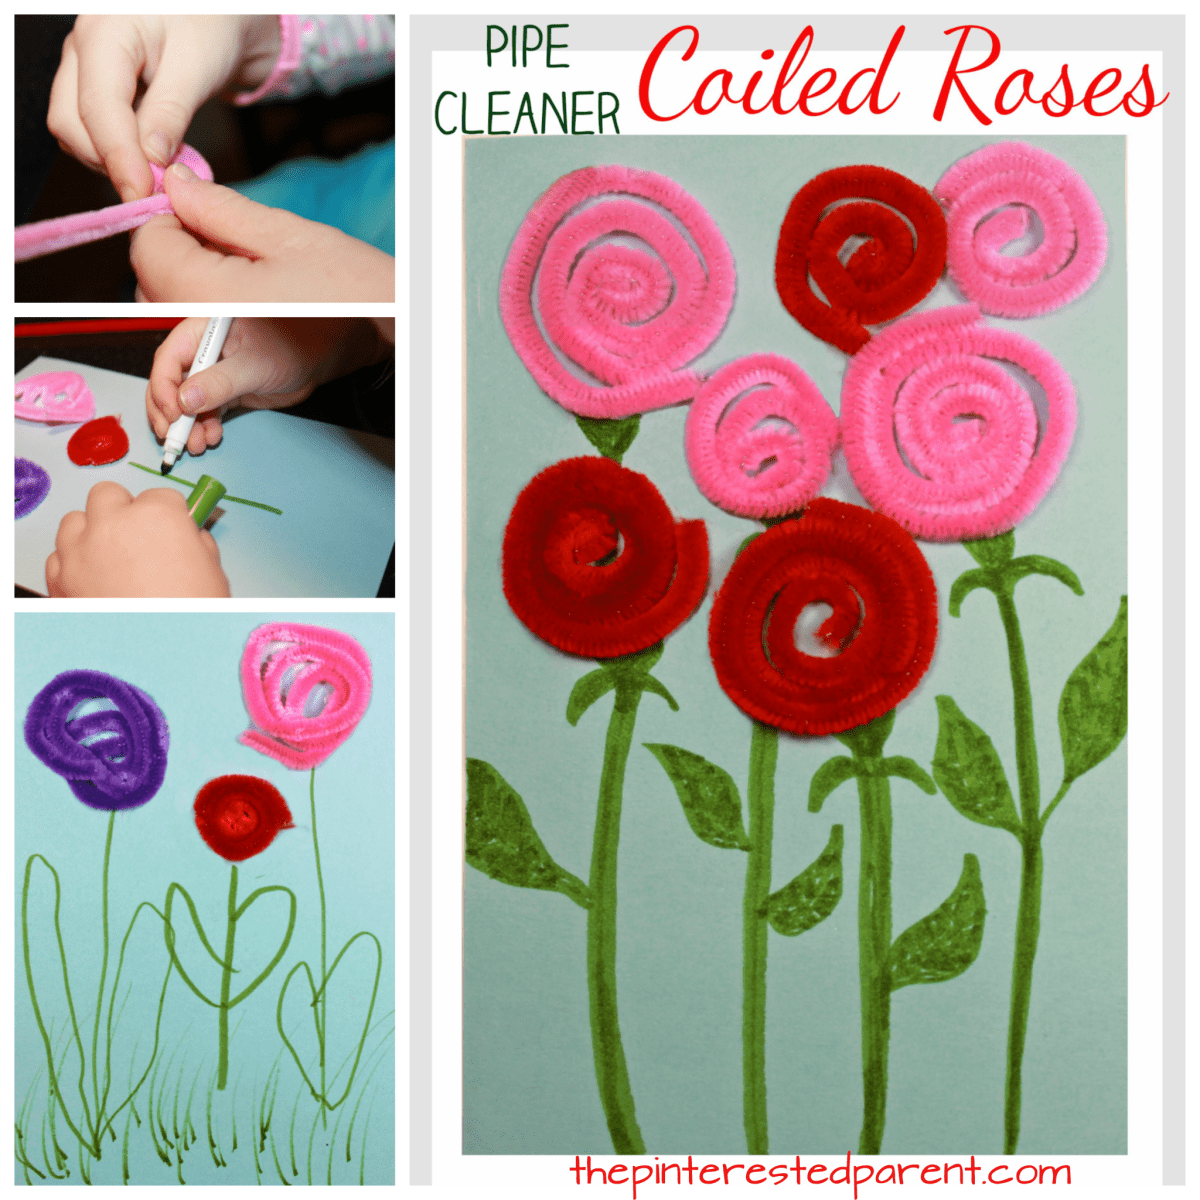 Yarn and Pipe Cleaner Coiled Roses